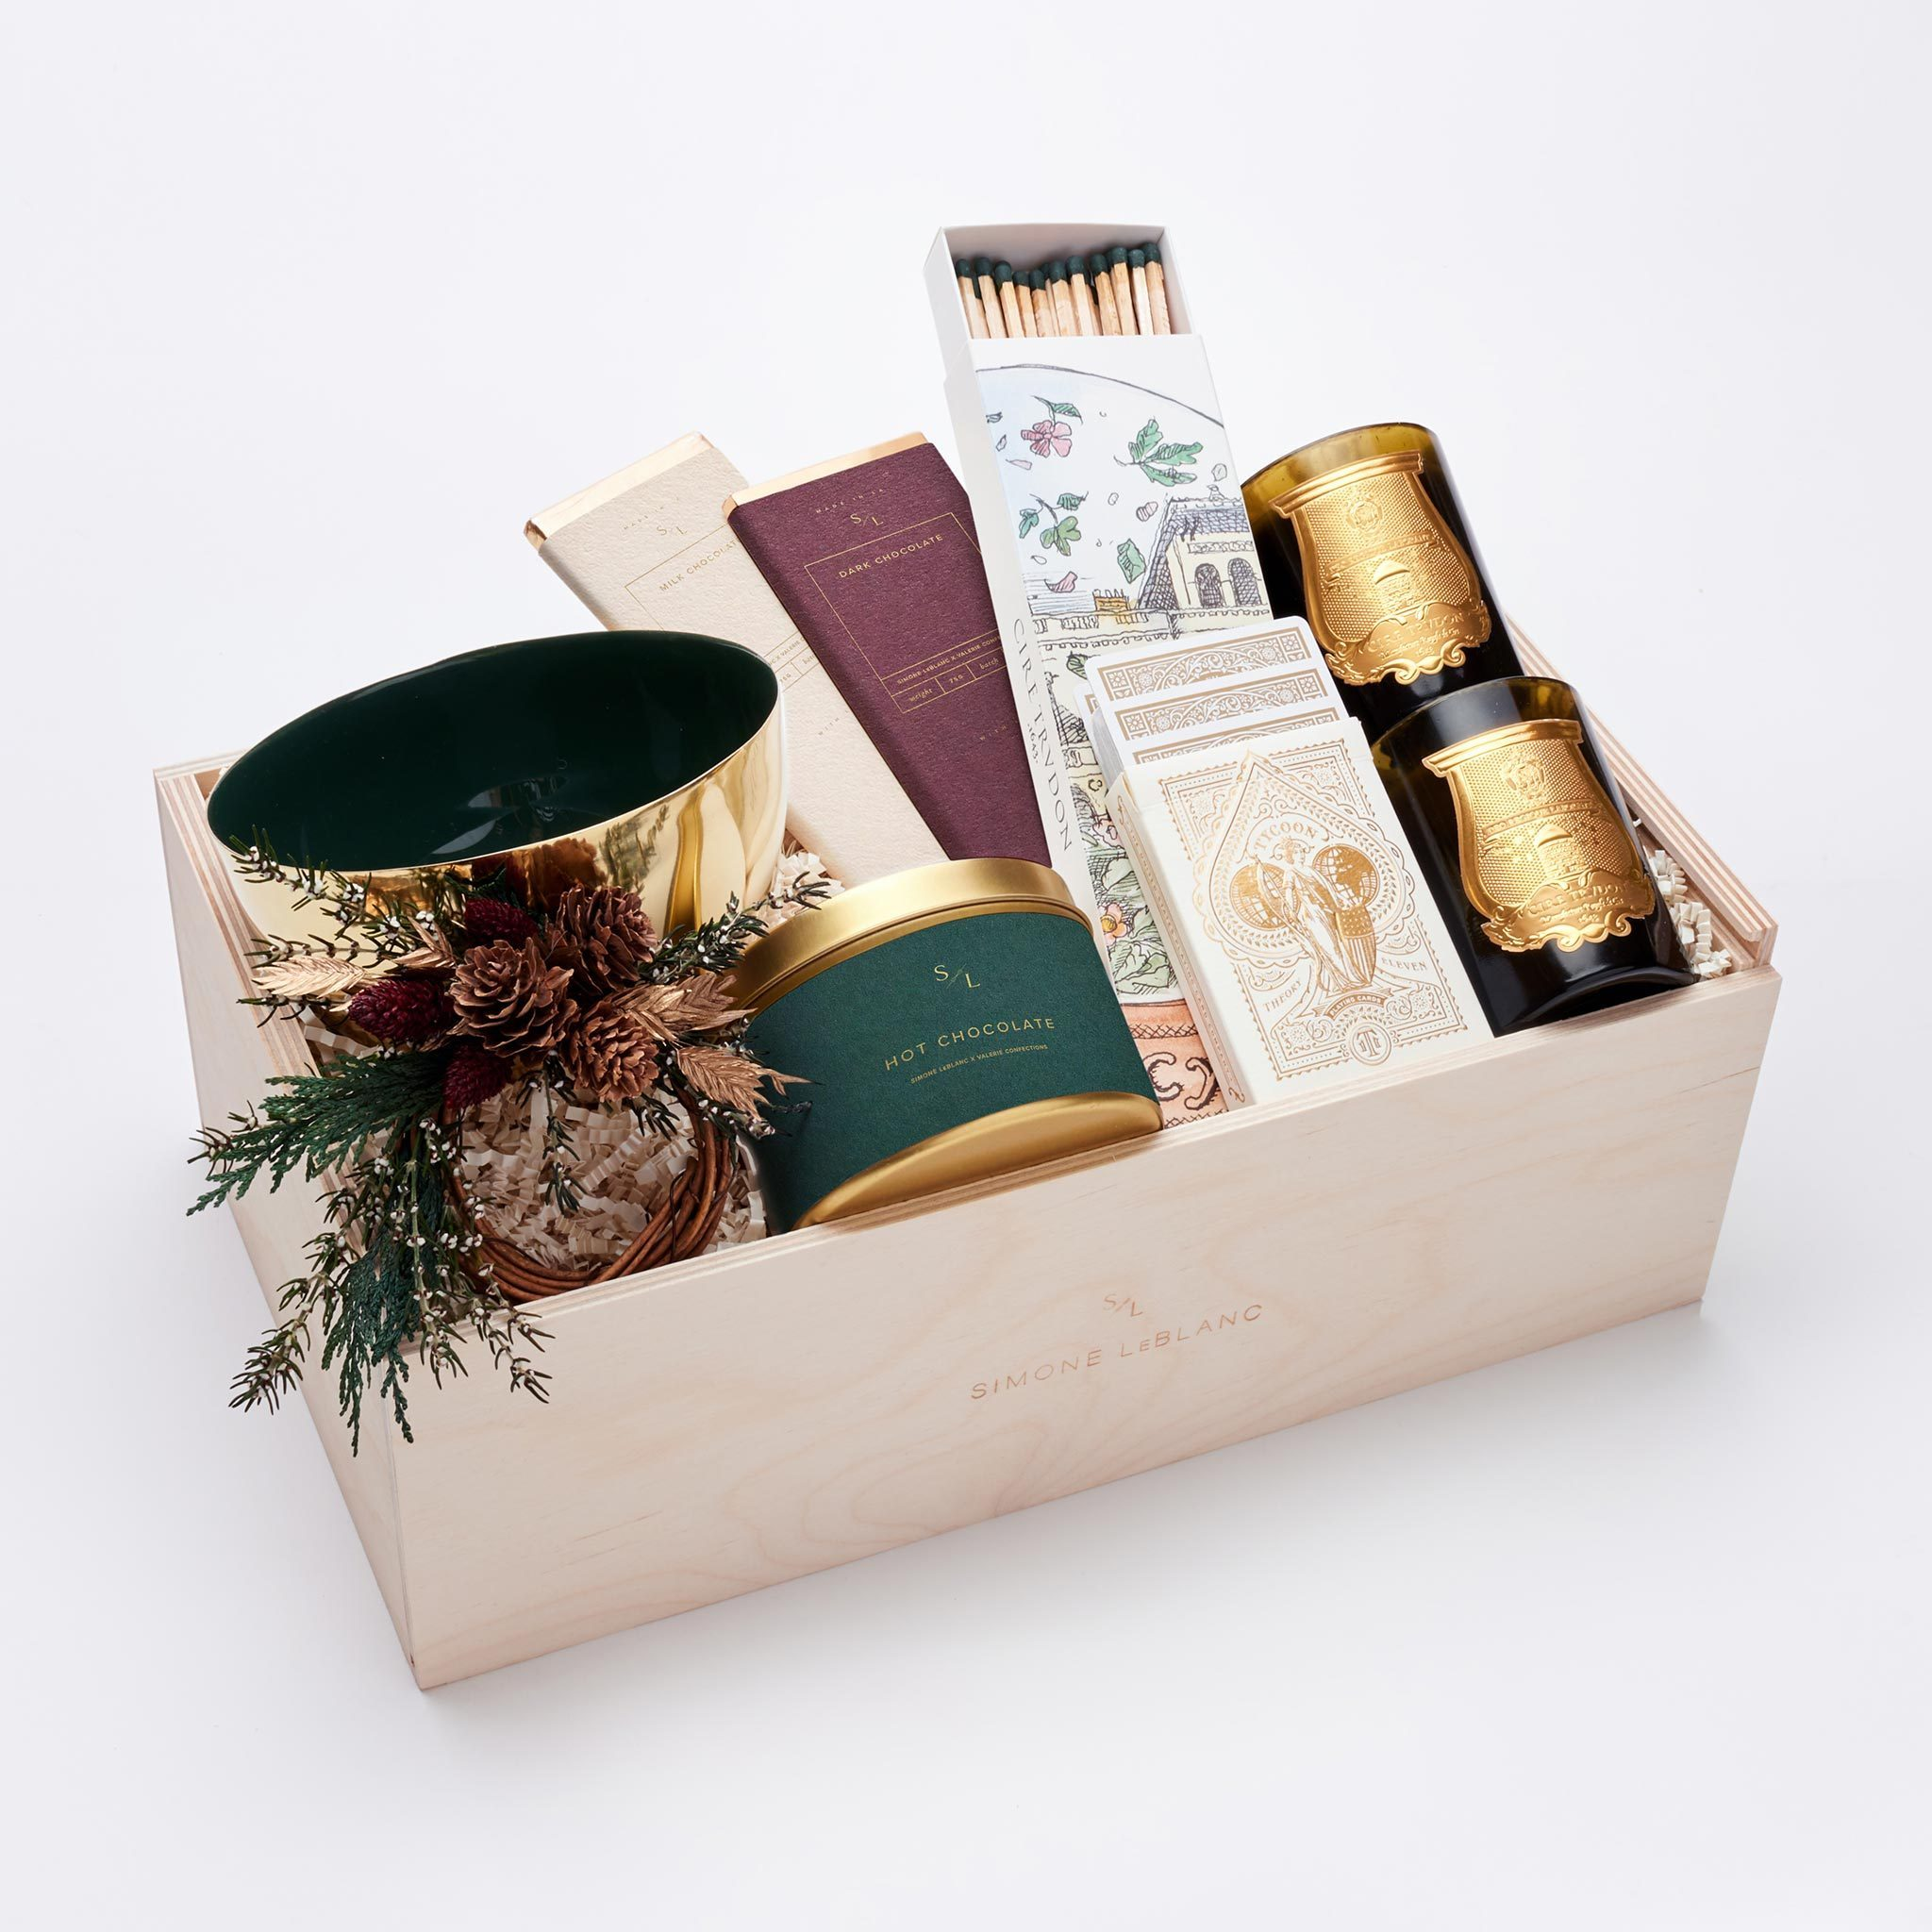 5 Chic Hostess Gifts That Will Impress At Any Holiday Party